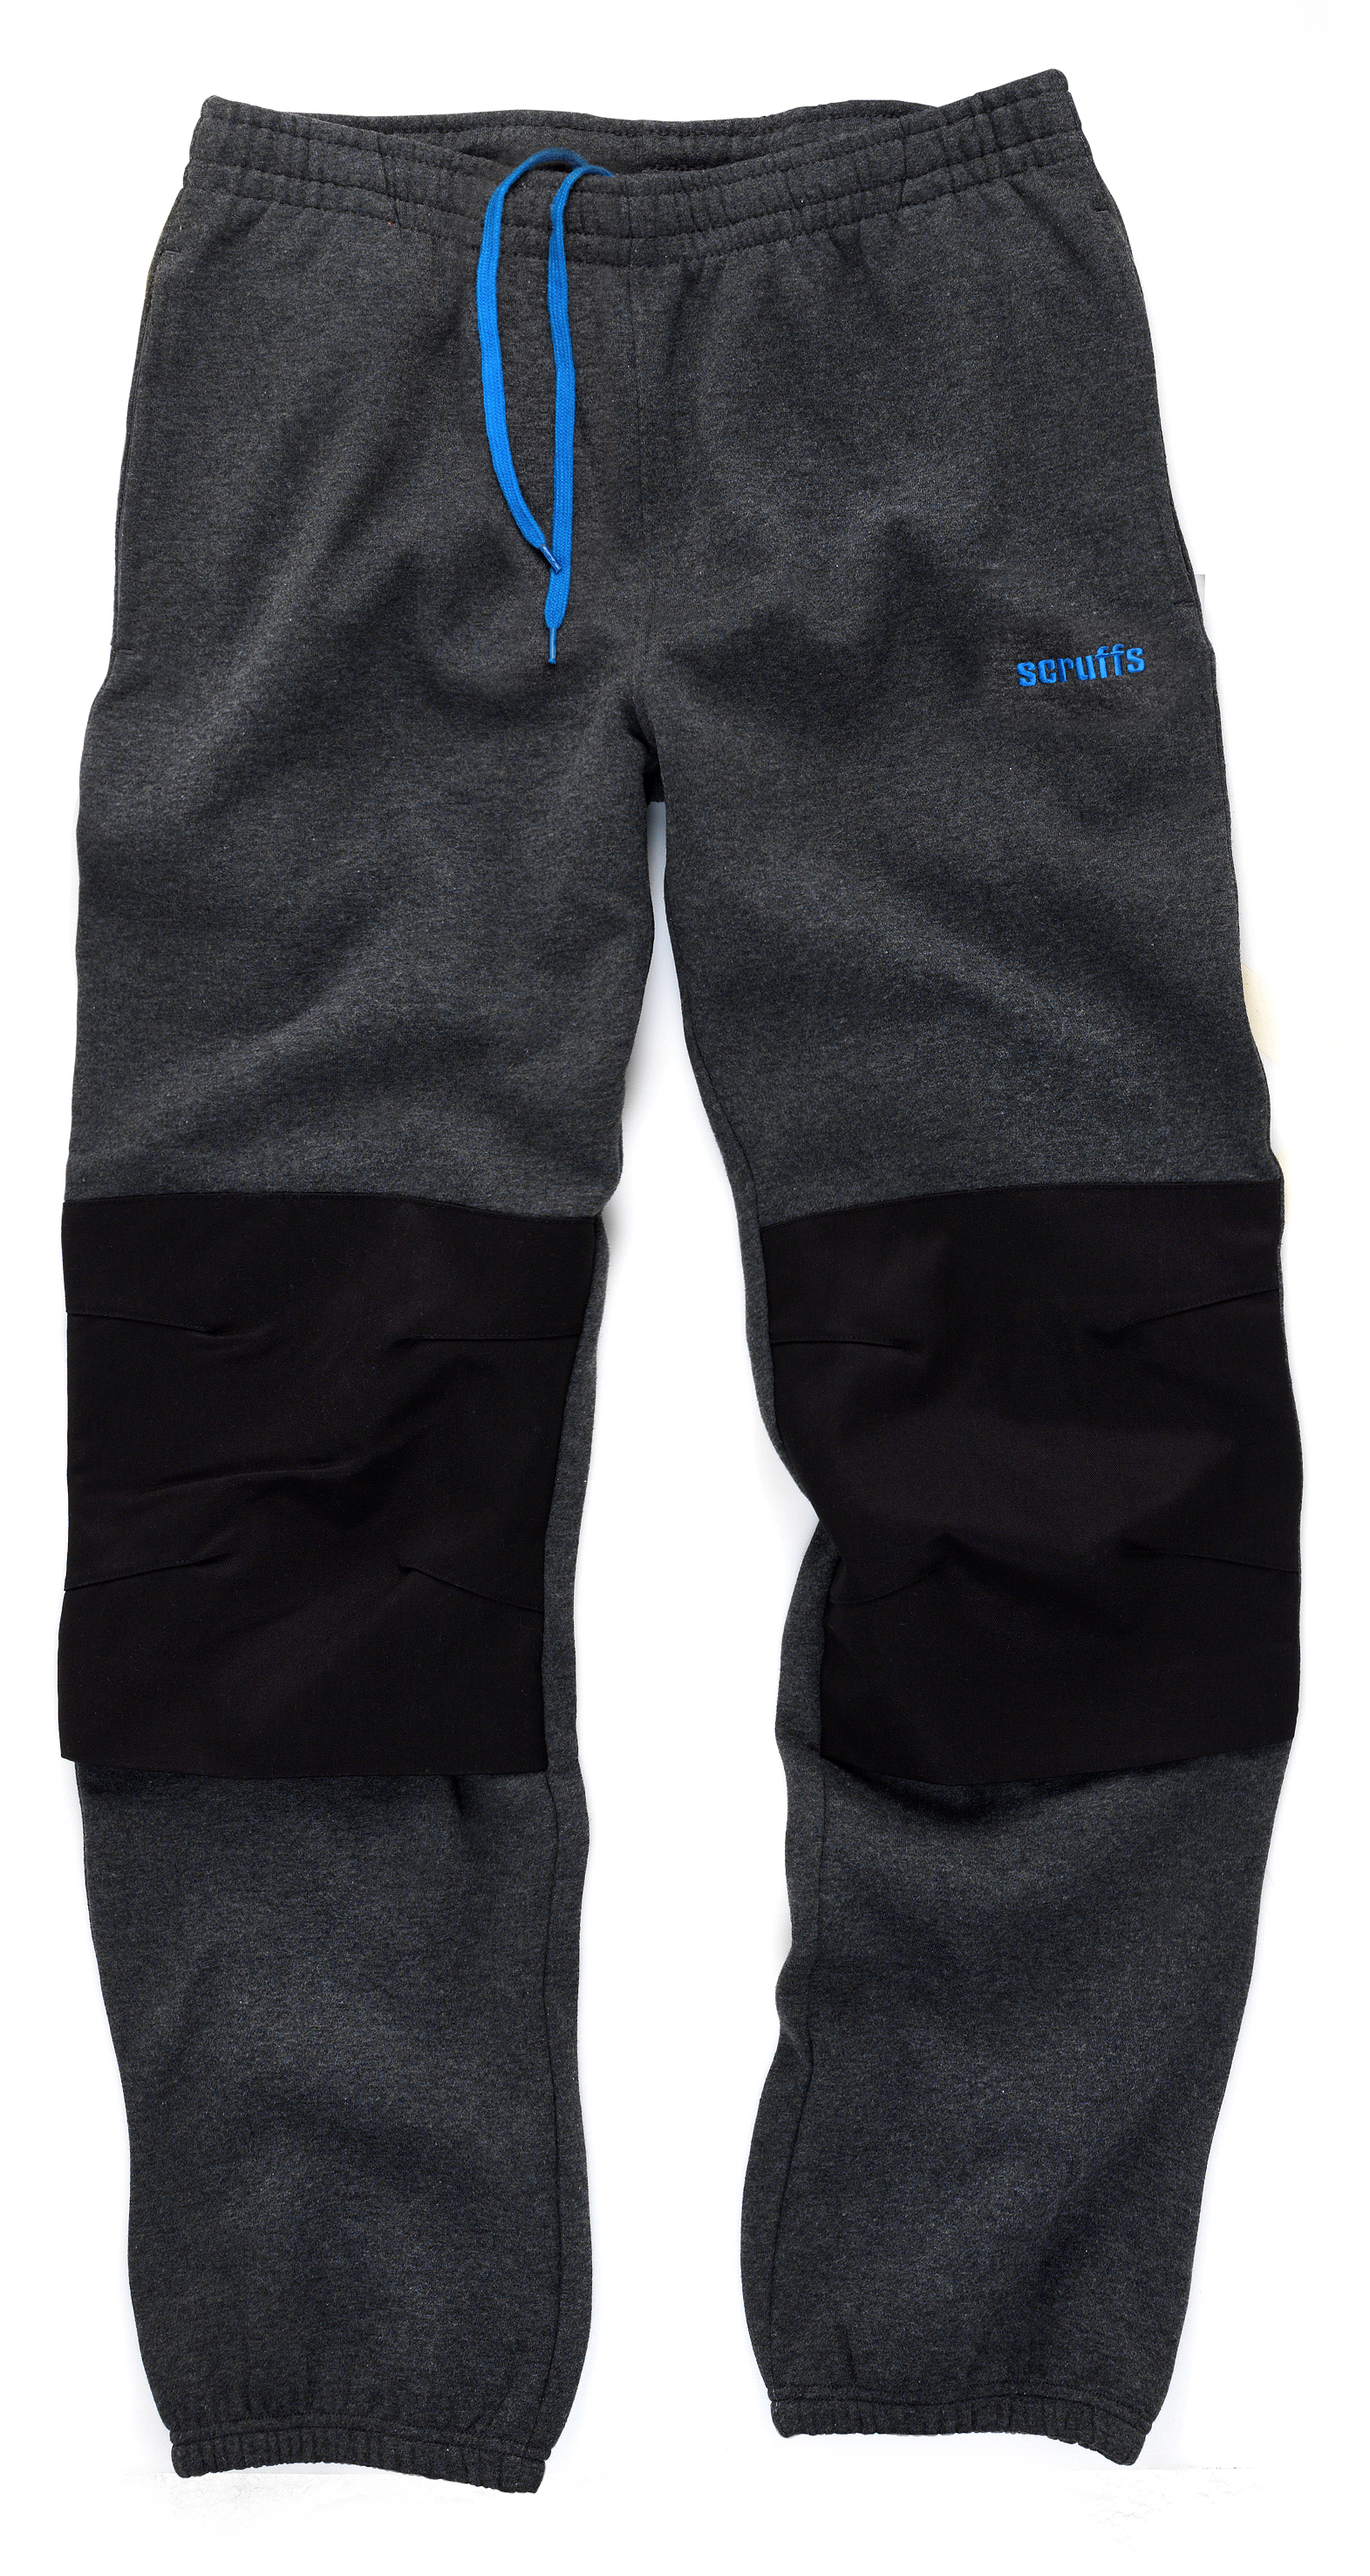 We stock jogging bottoms in many variations and even stock up to size 5XL. Our tracksuit bottoms are comfortable, flexible and reliable, making them perfect for both work and leisure. Discover our own branded Site King Tracksuit Bottoms, which are a popular choice.